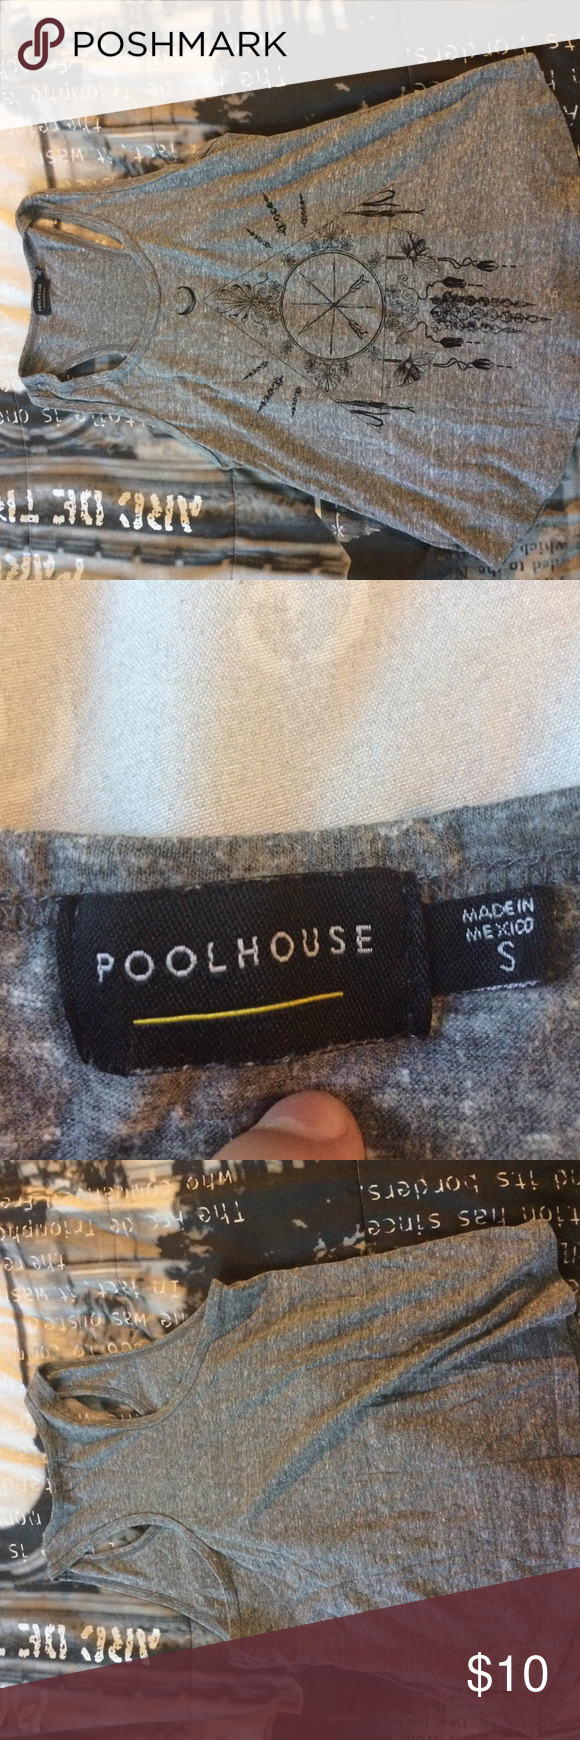 Poolhouse tank top Gray and black tank top Tops Tank Tops